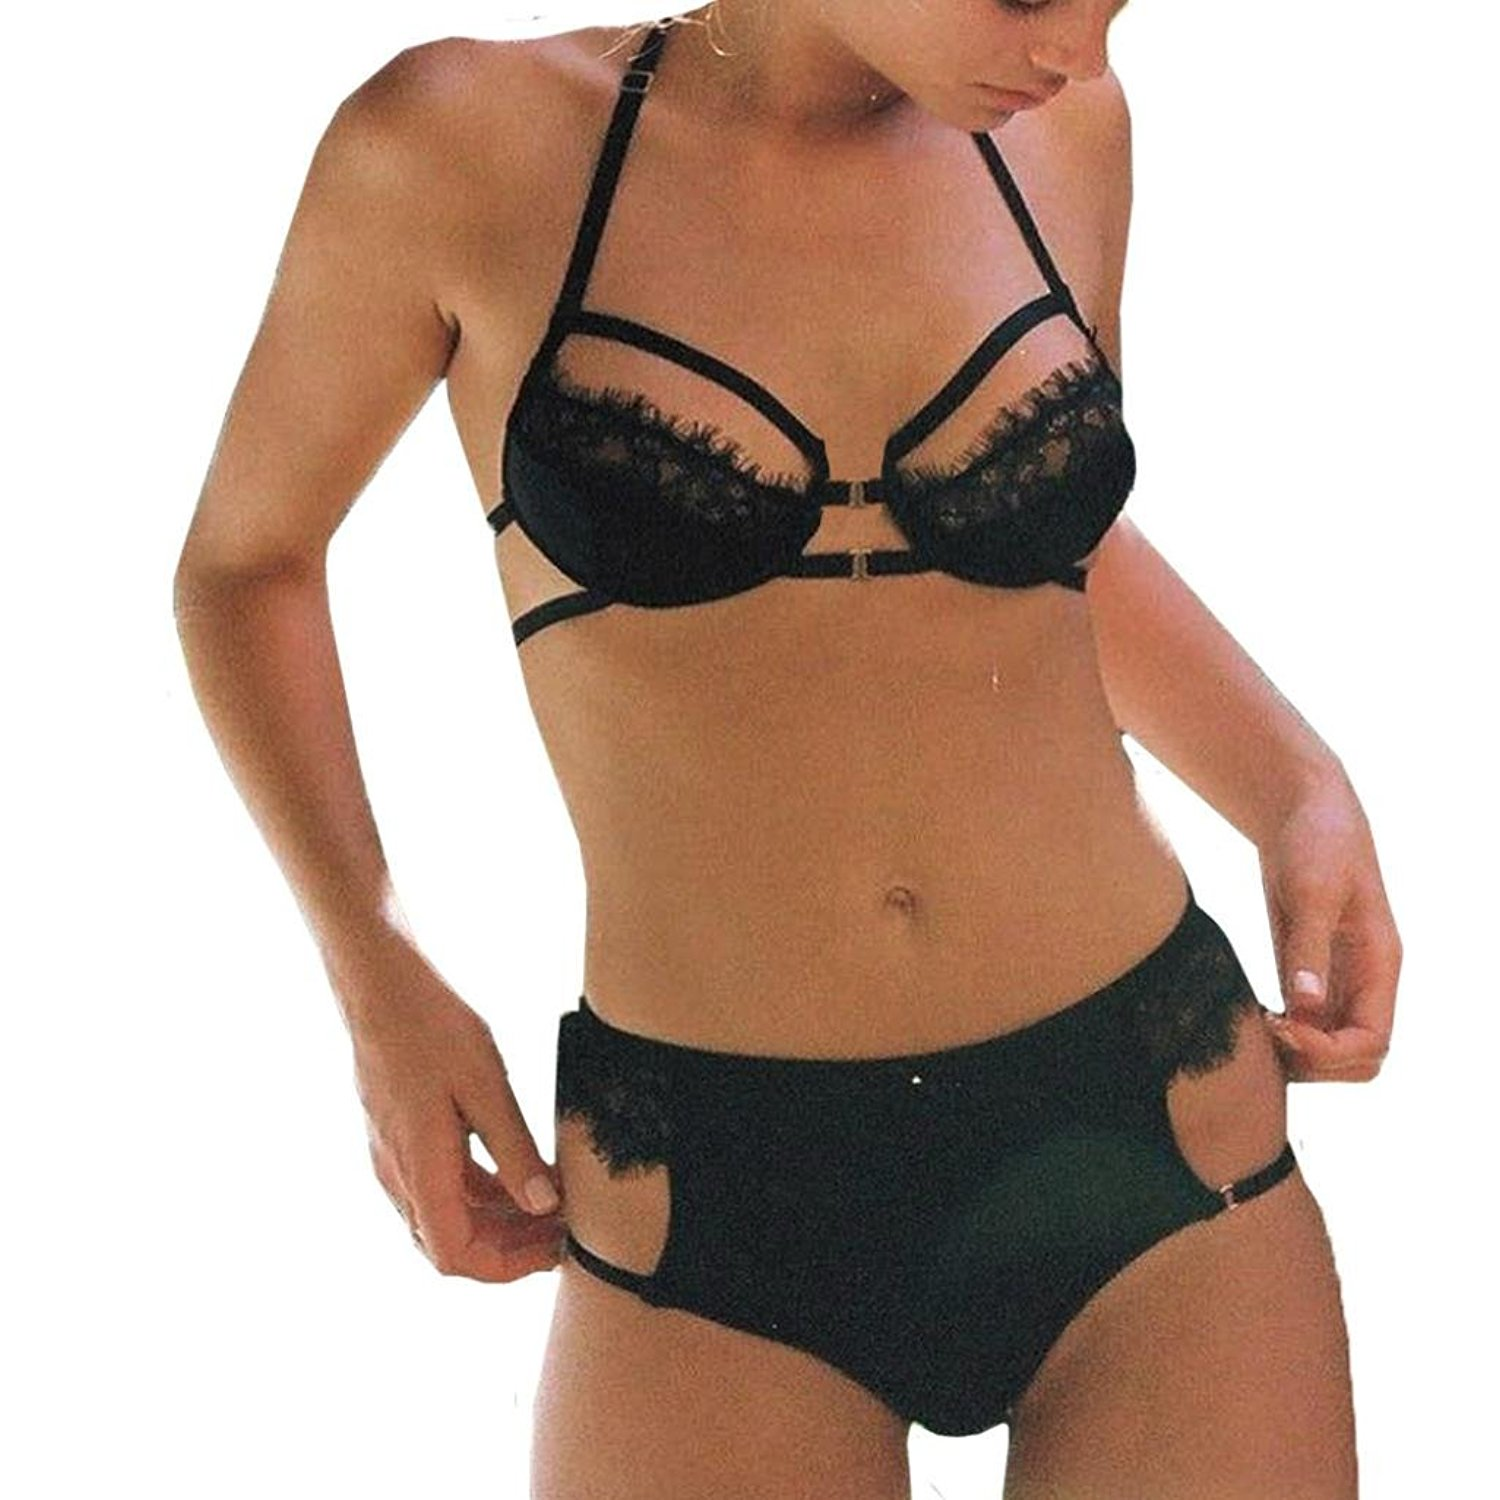 fd8e89e83783b Get Quotations · Lace Underwear Set